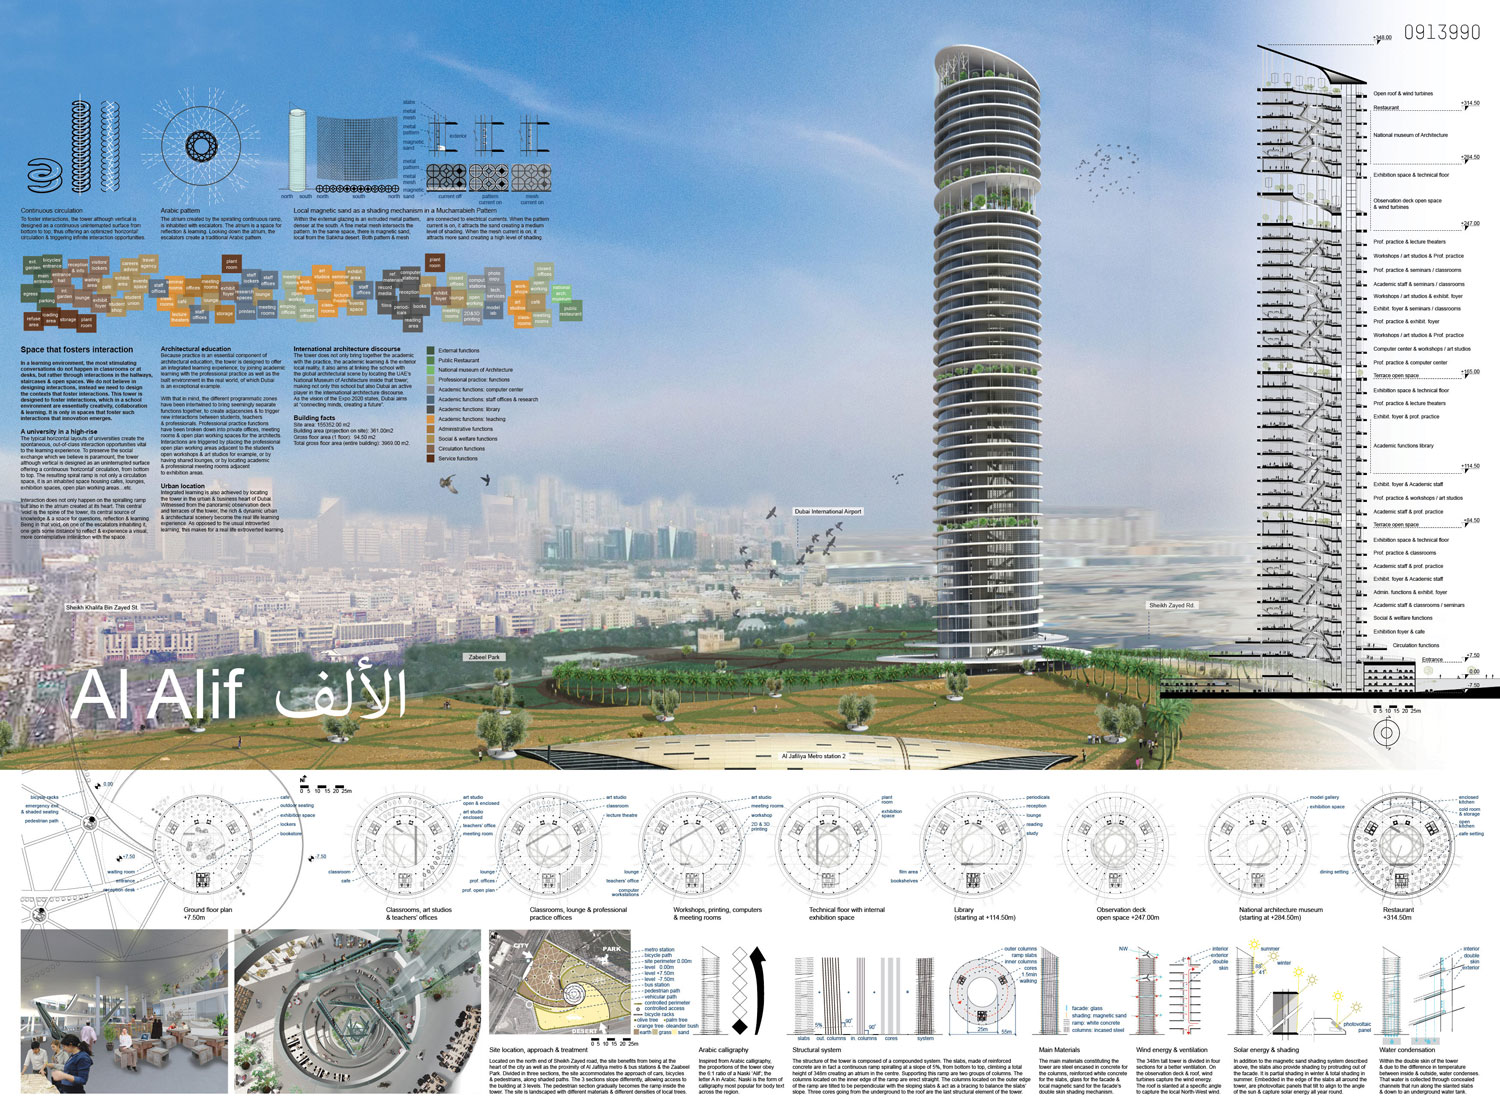 akka al alif vertical campus educational skyscraper landscape urban environment